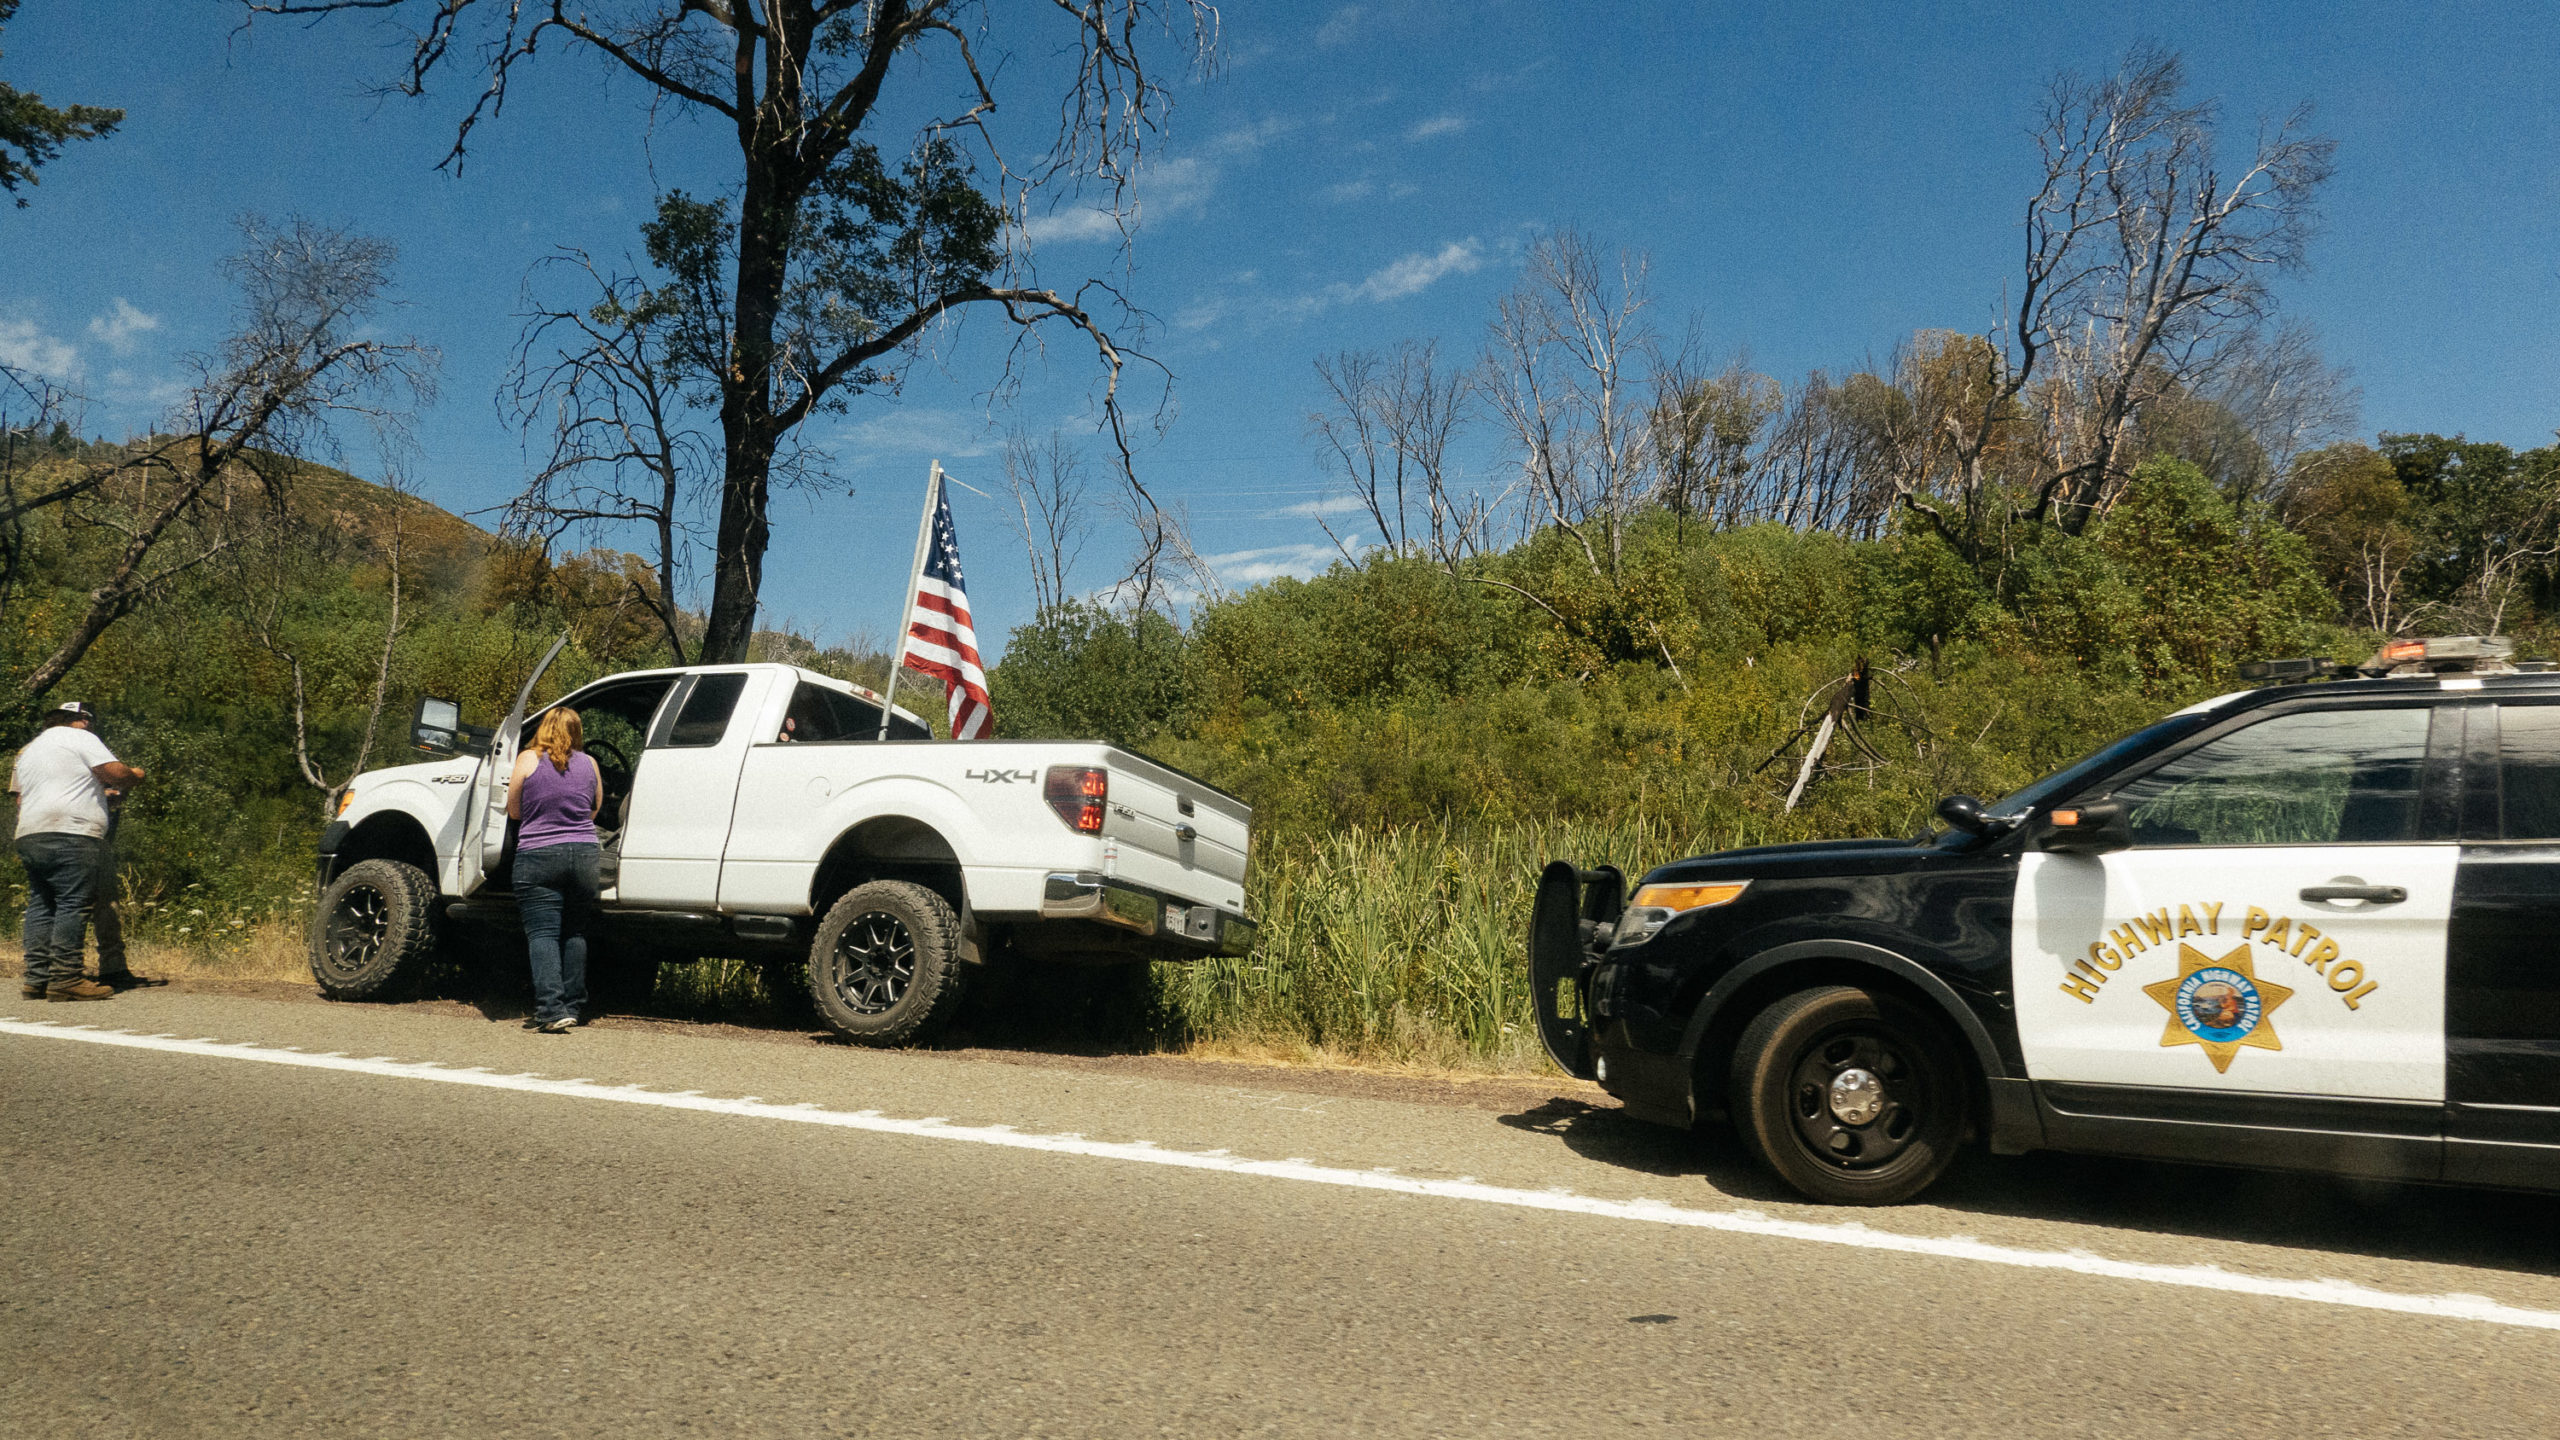 A white Ford F-150 with a large American flag off to the side of the road with a police car behind it